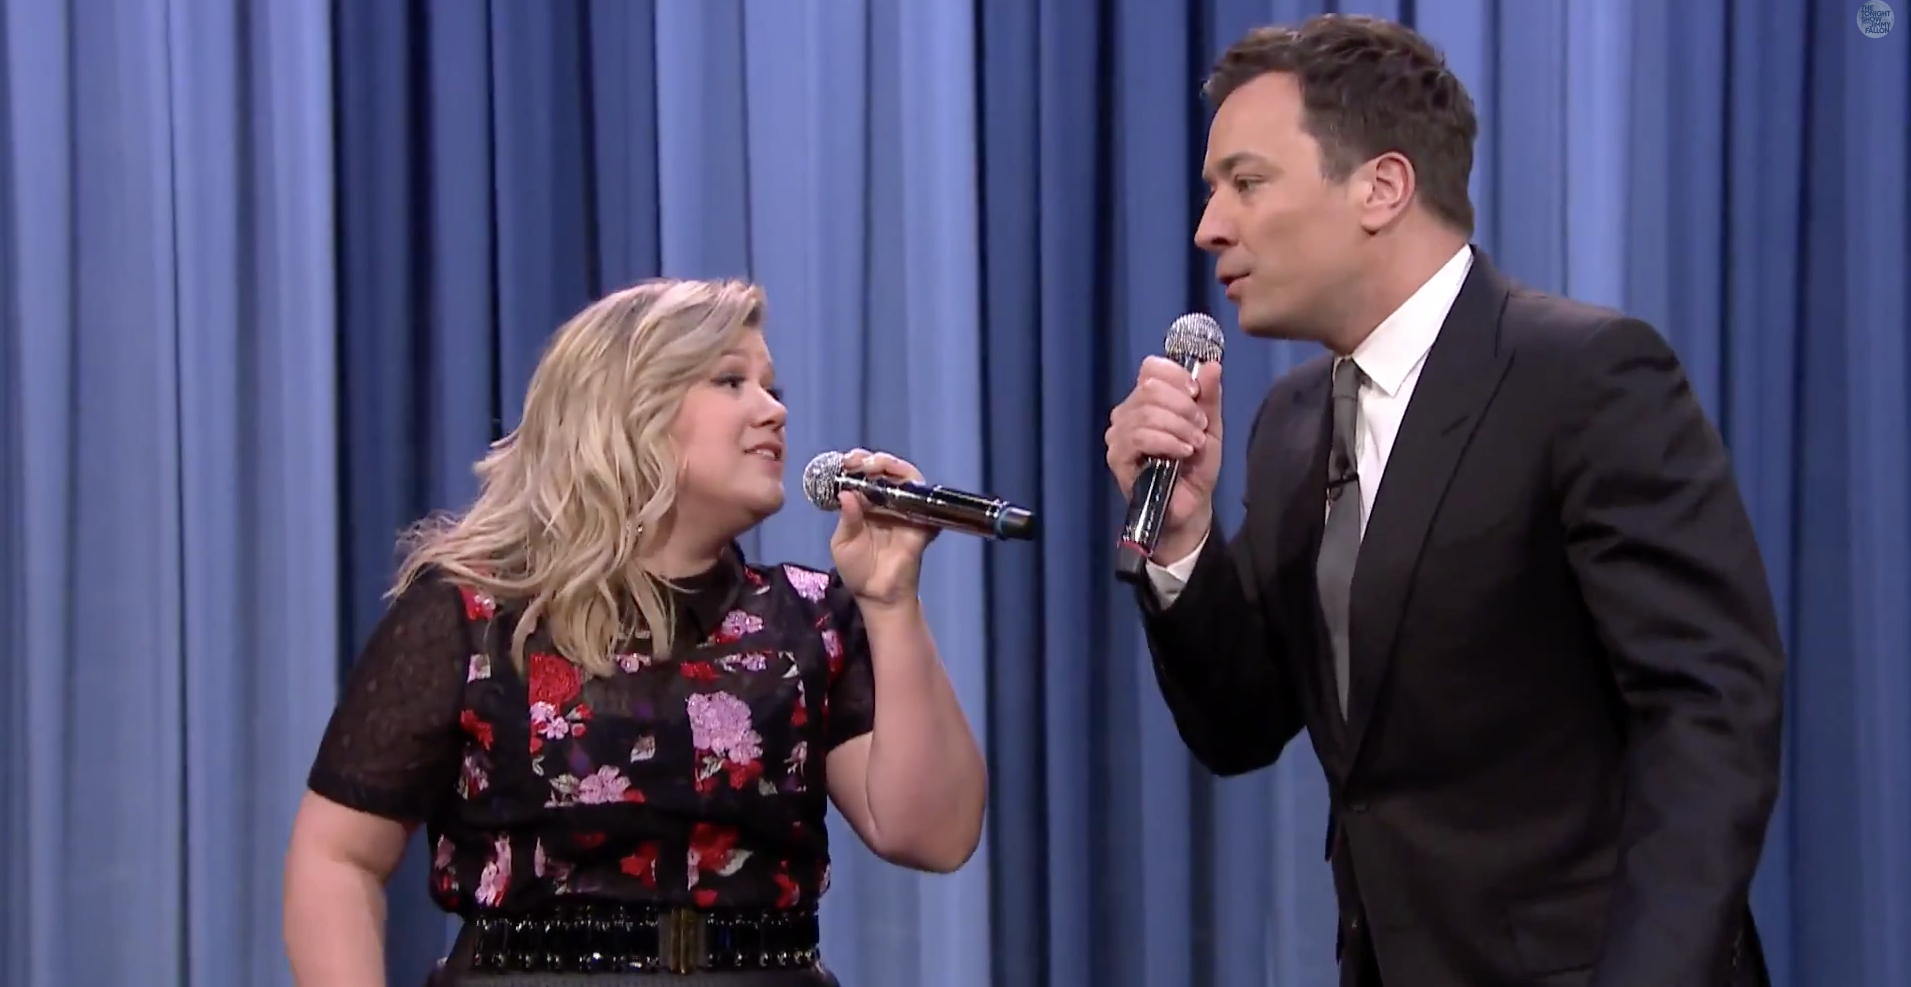 Kelly Clarkson y Jimmy Fallon protagonizan divertido dueto. Foto: Youtube/The Tonight Show Starring Jimmy Fallon